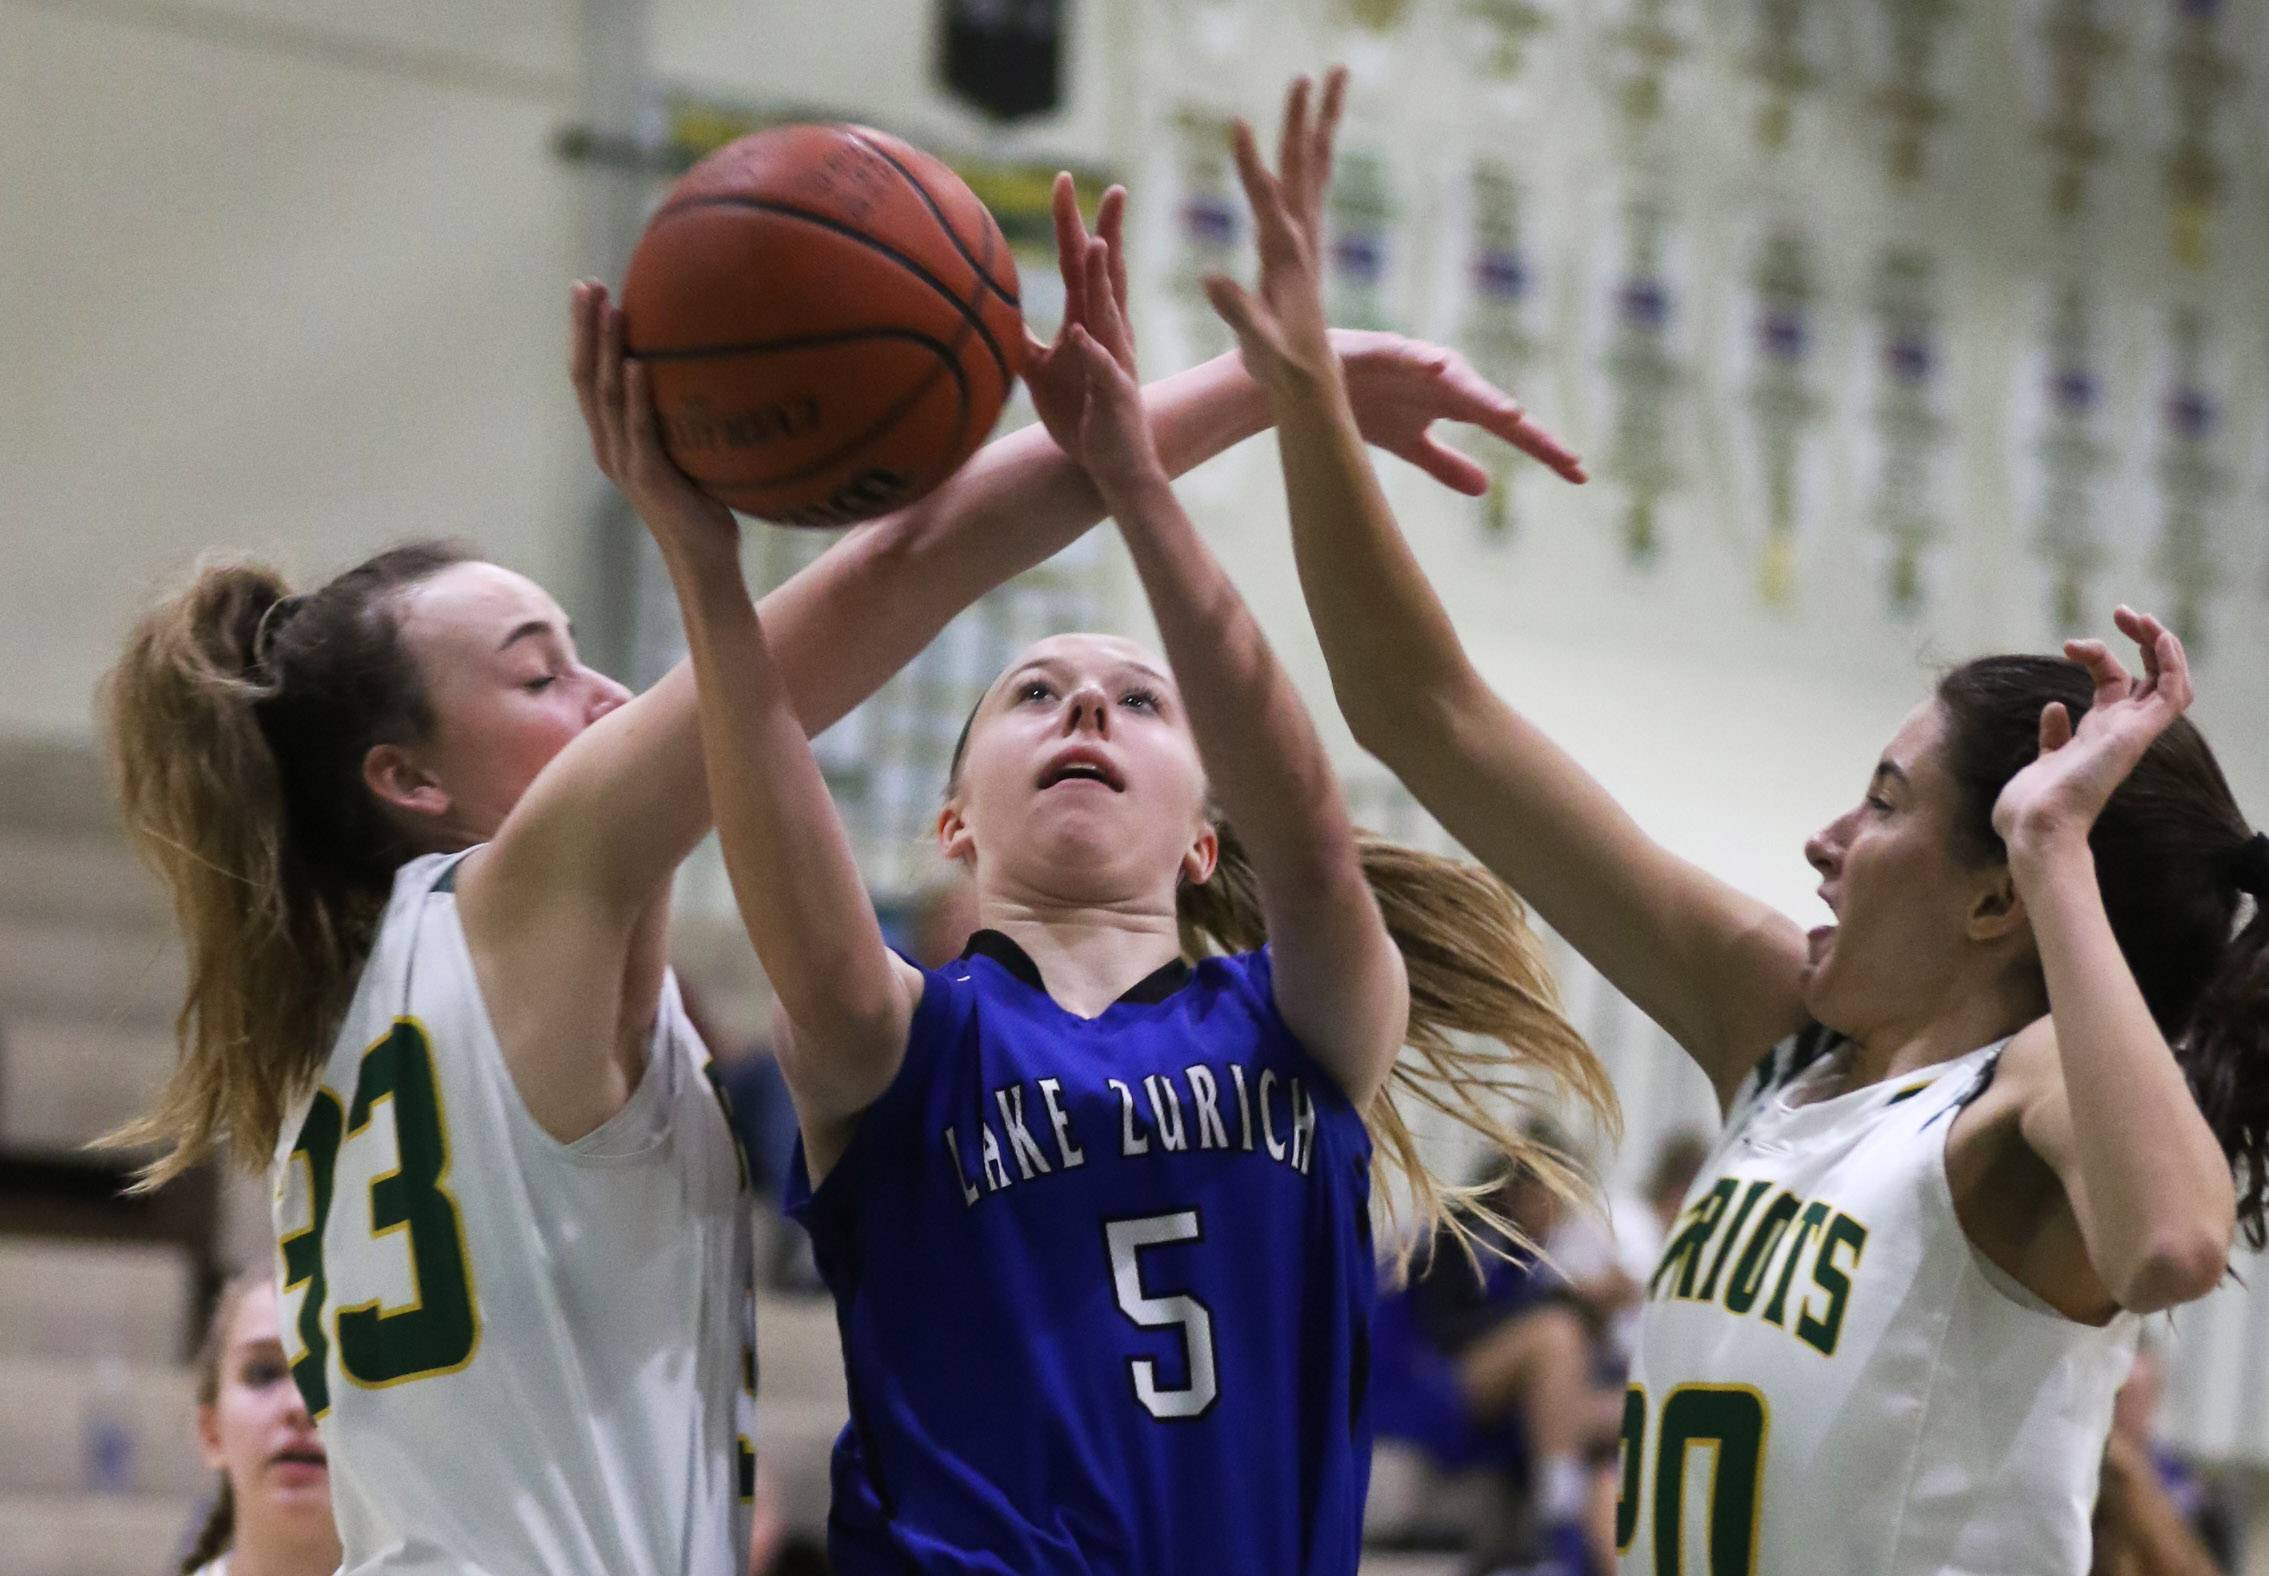 Lake Zurich guard Ella Gilbertson, center, is fouled by Stevenson players Klaire Steffens, left, and Avery King on Thursday at Stevenson.